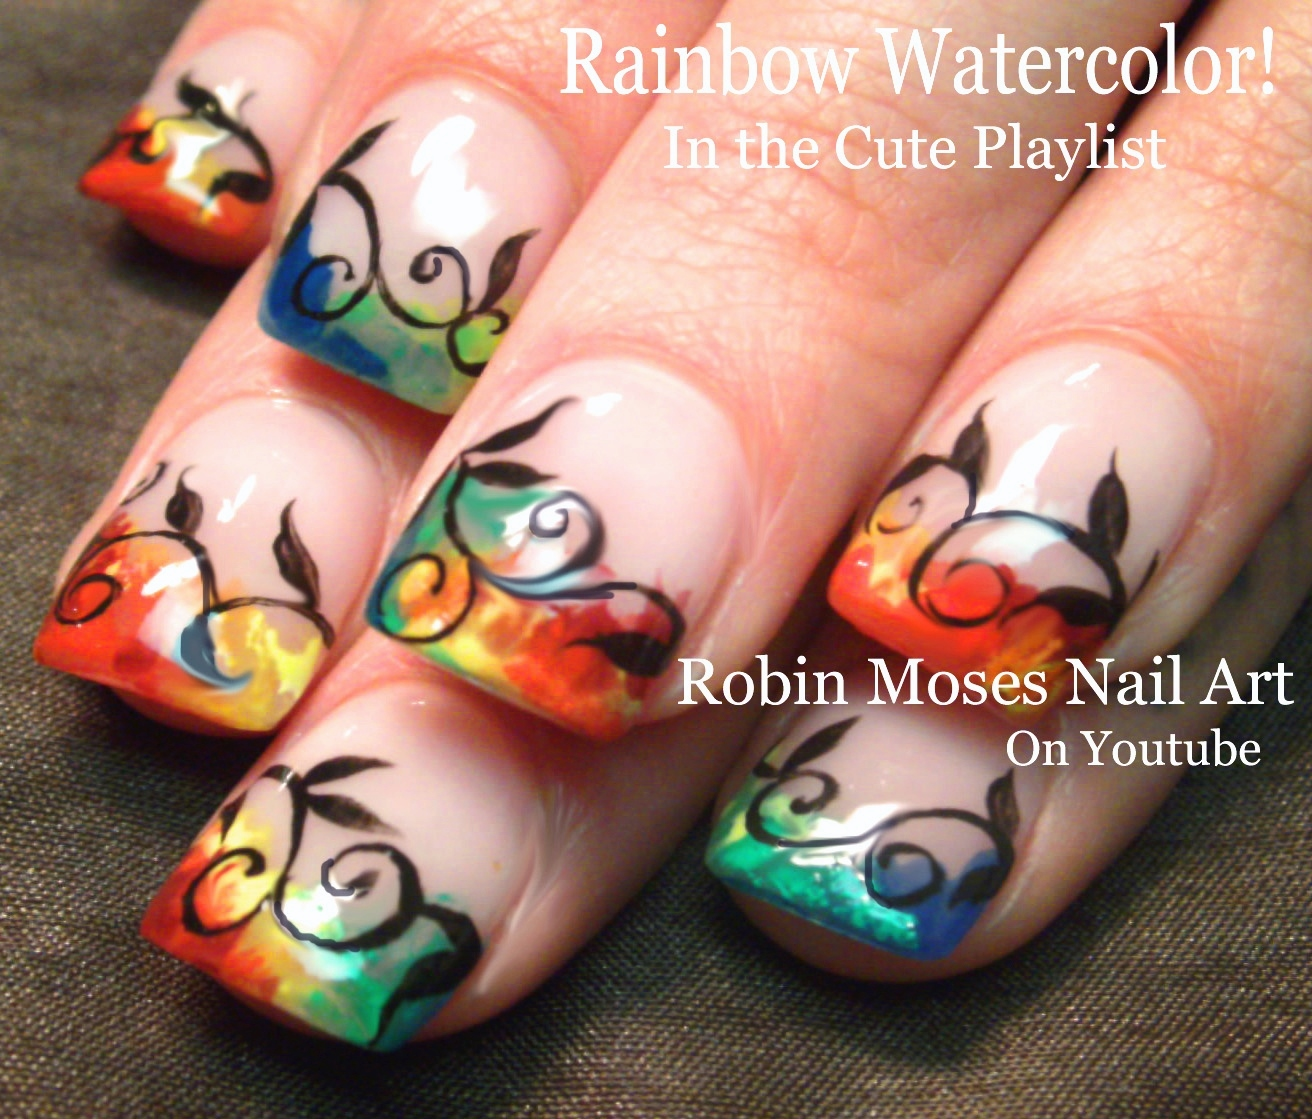 Nail Art by Robin Moses: Rainbow Watercolor Nails